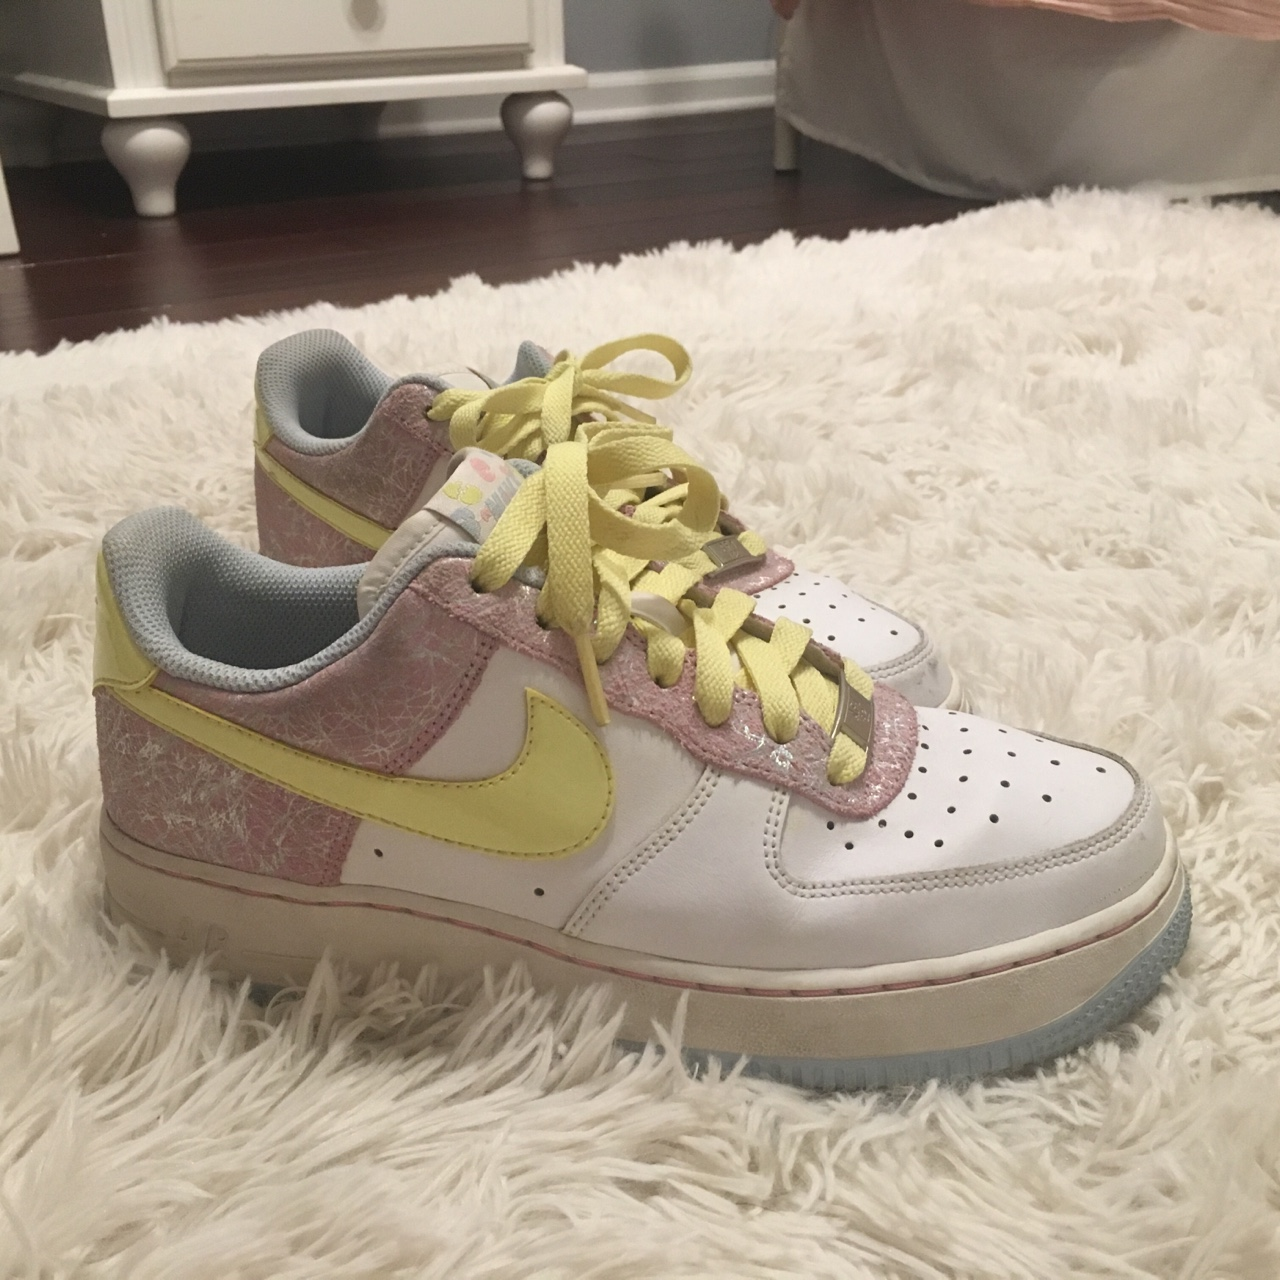 Nike air max 90. Pastel colored. Came out last Depop